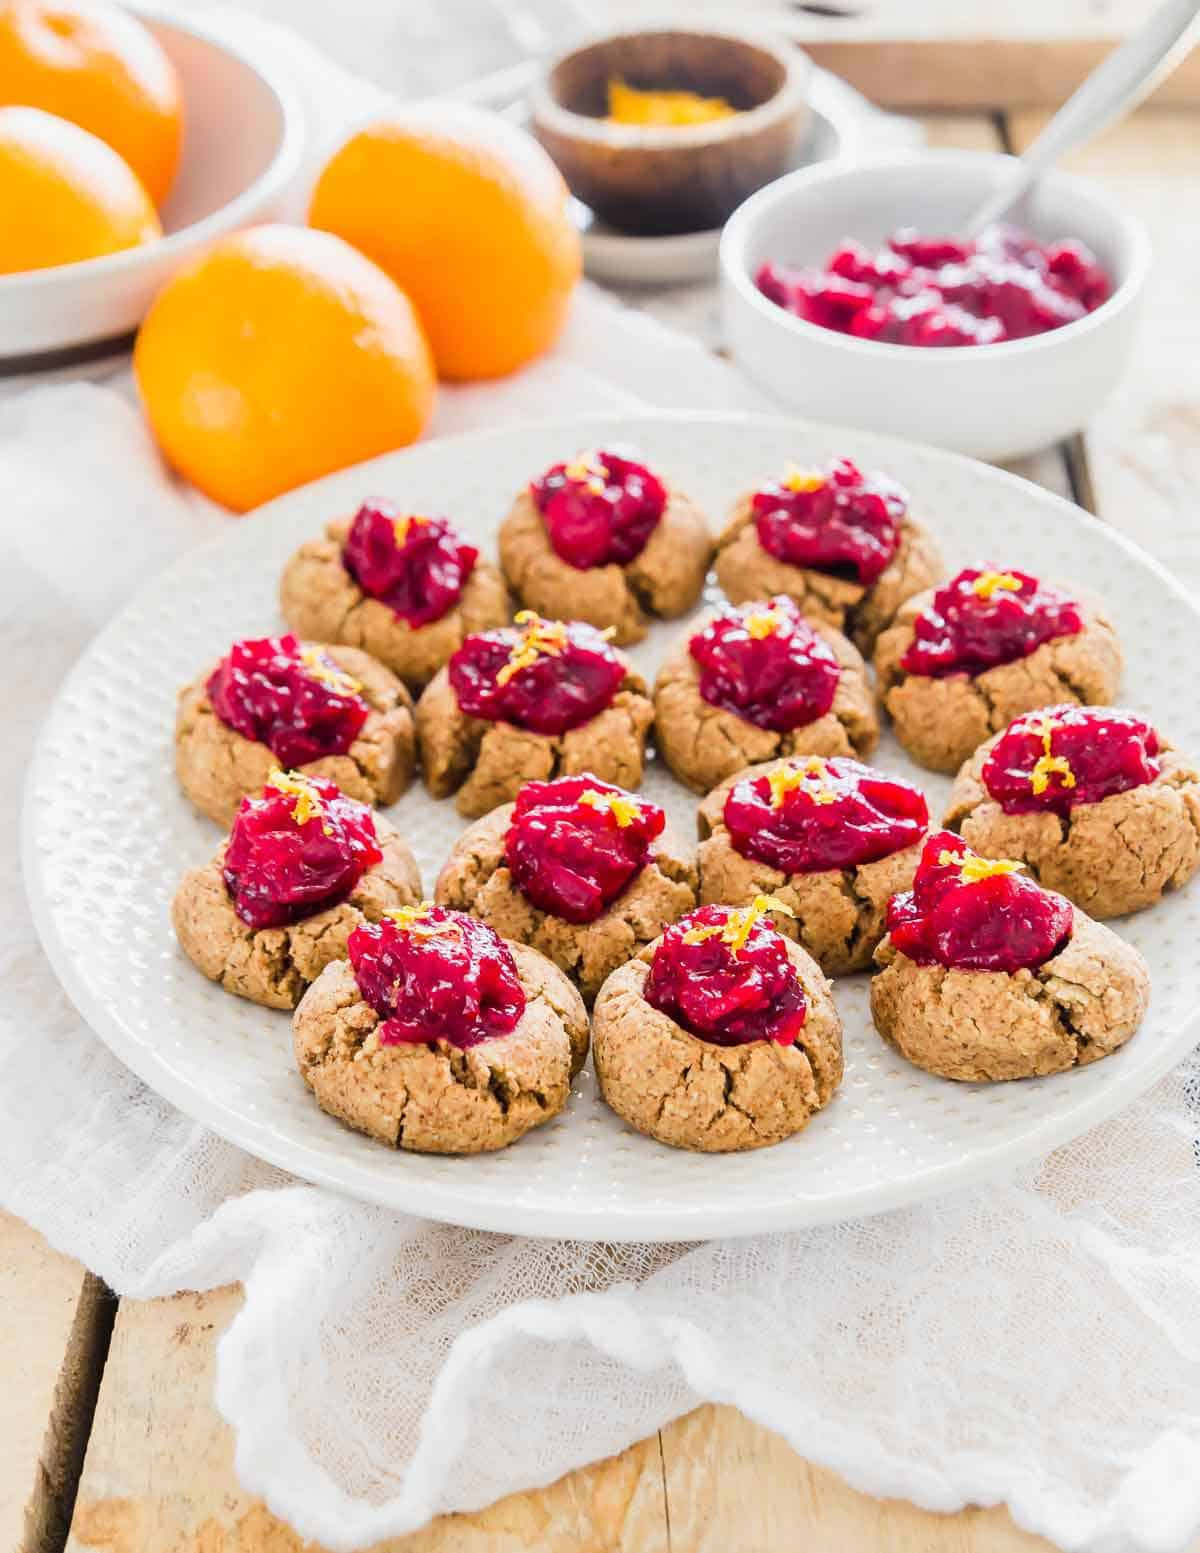 Thumbprint almond pulp cookies are the easiest and tastiest way to use leftover almond pulp from homemade almond milk - a gluten-free & vegan recipe using almond pulp and oat flour.